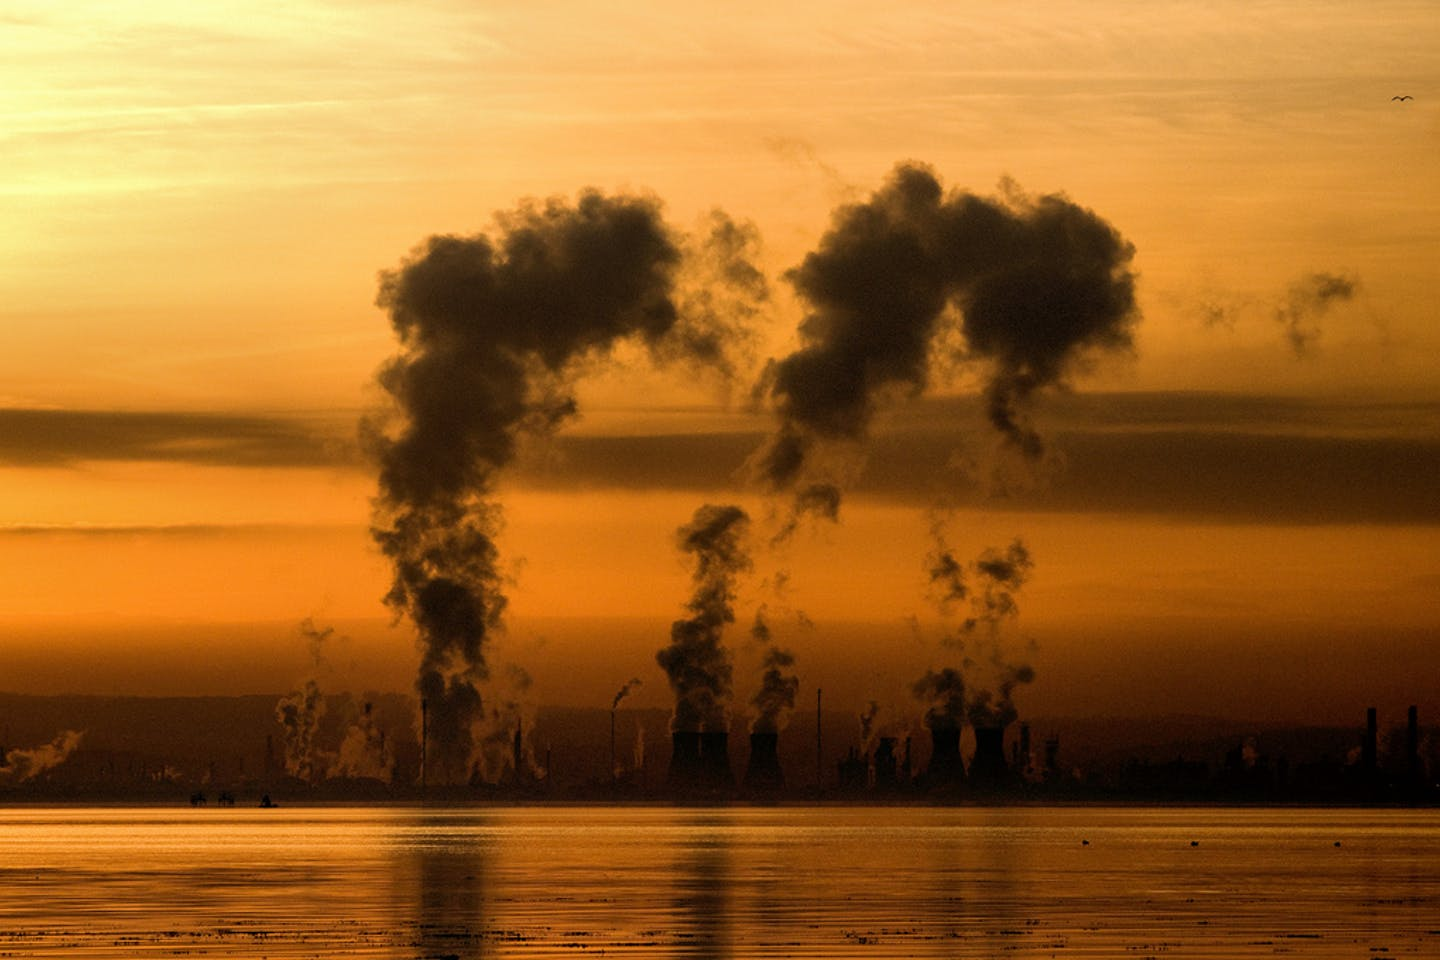 A sunset behind an oil refinery in Scotland